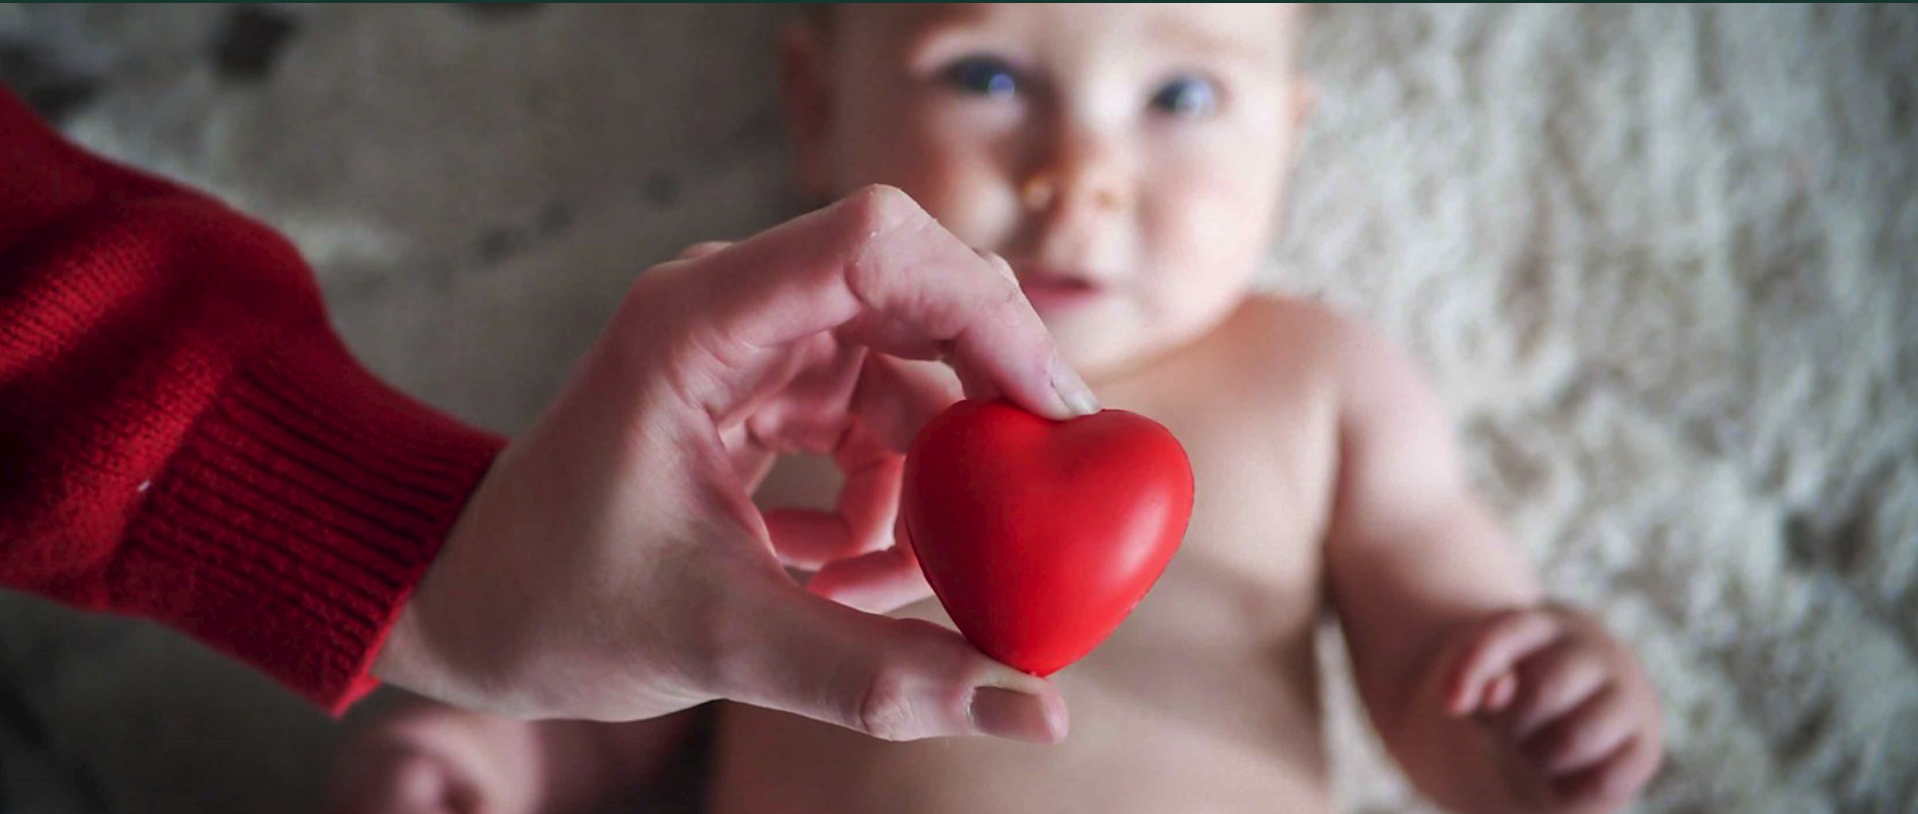 A baby lays down with a person's hand holding a rubber heart over it.